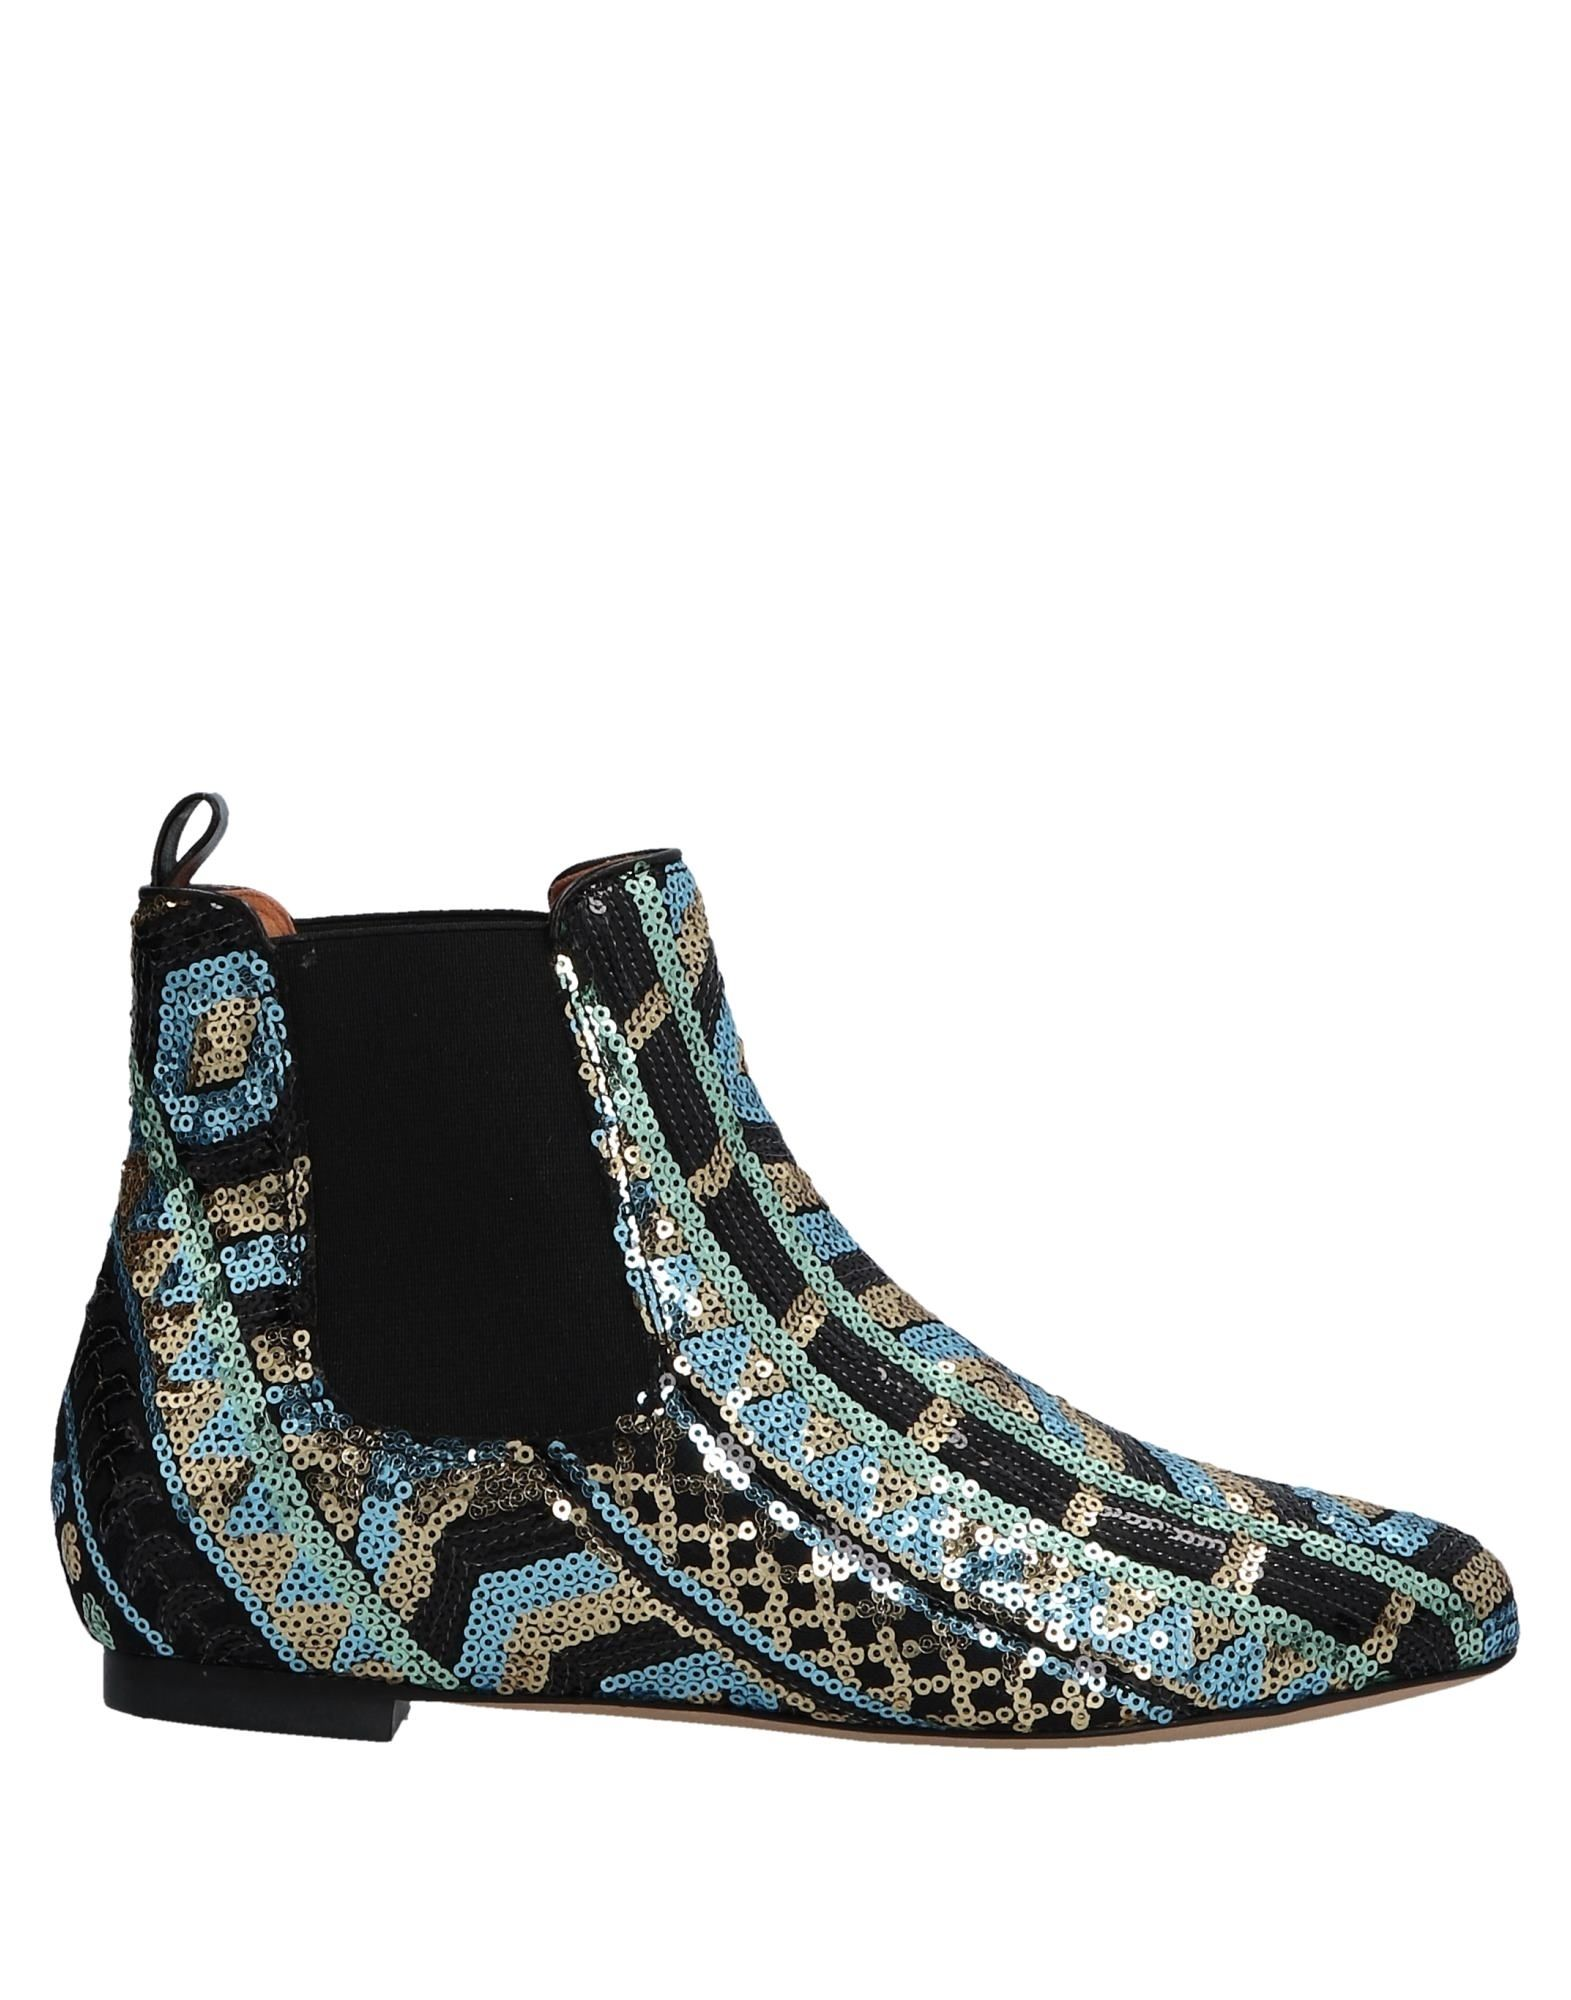 BAMS Ankle Boots in Sky Blue